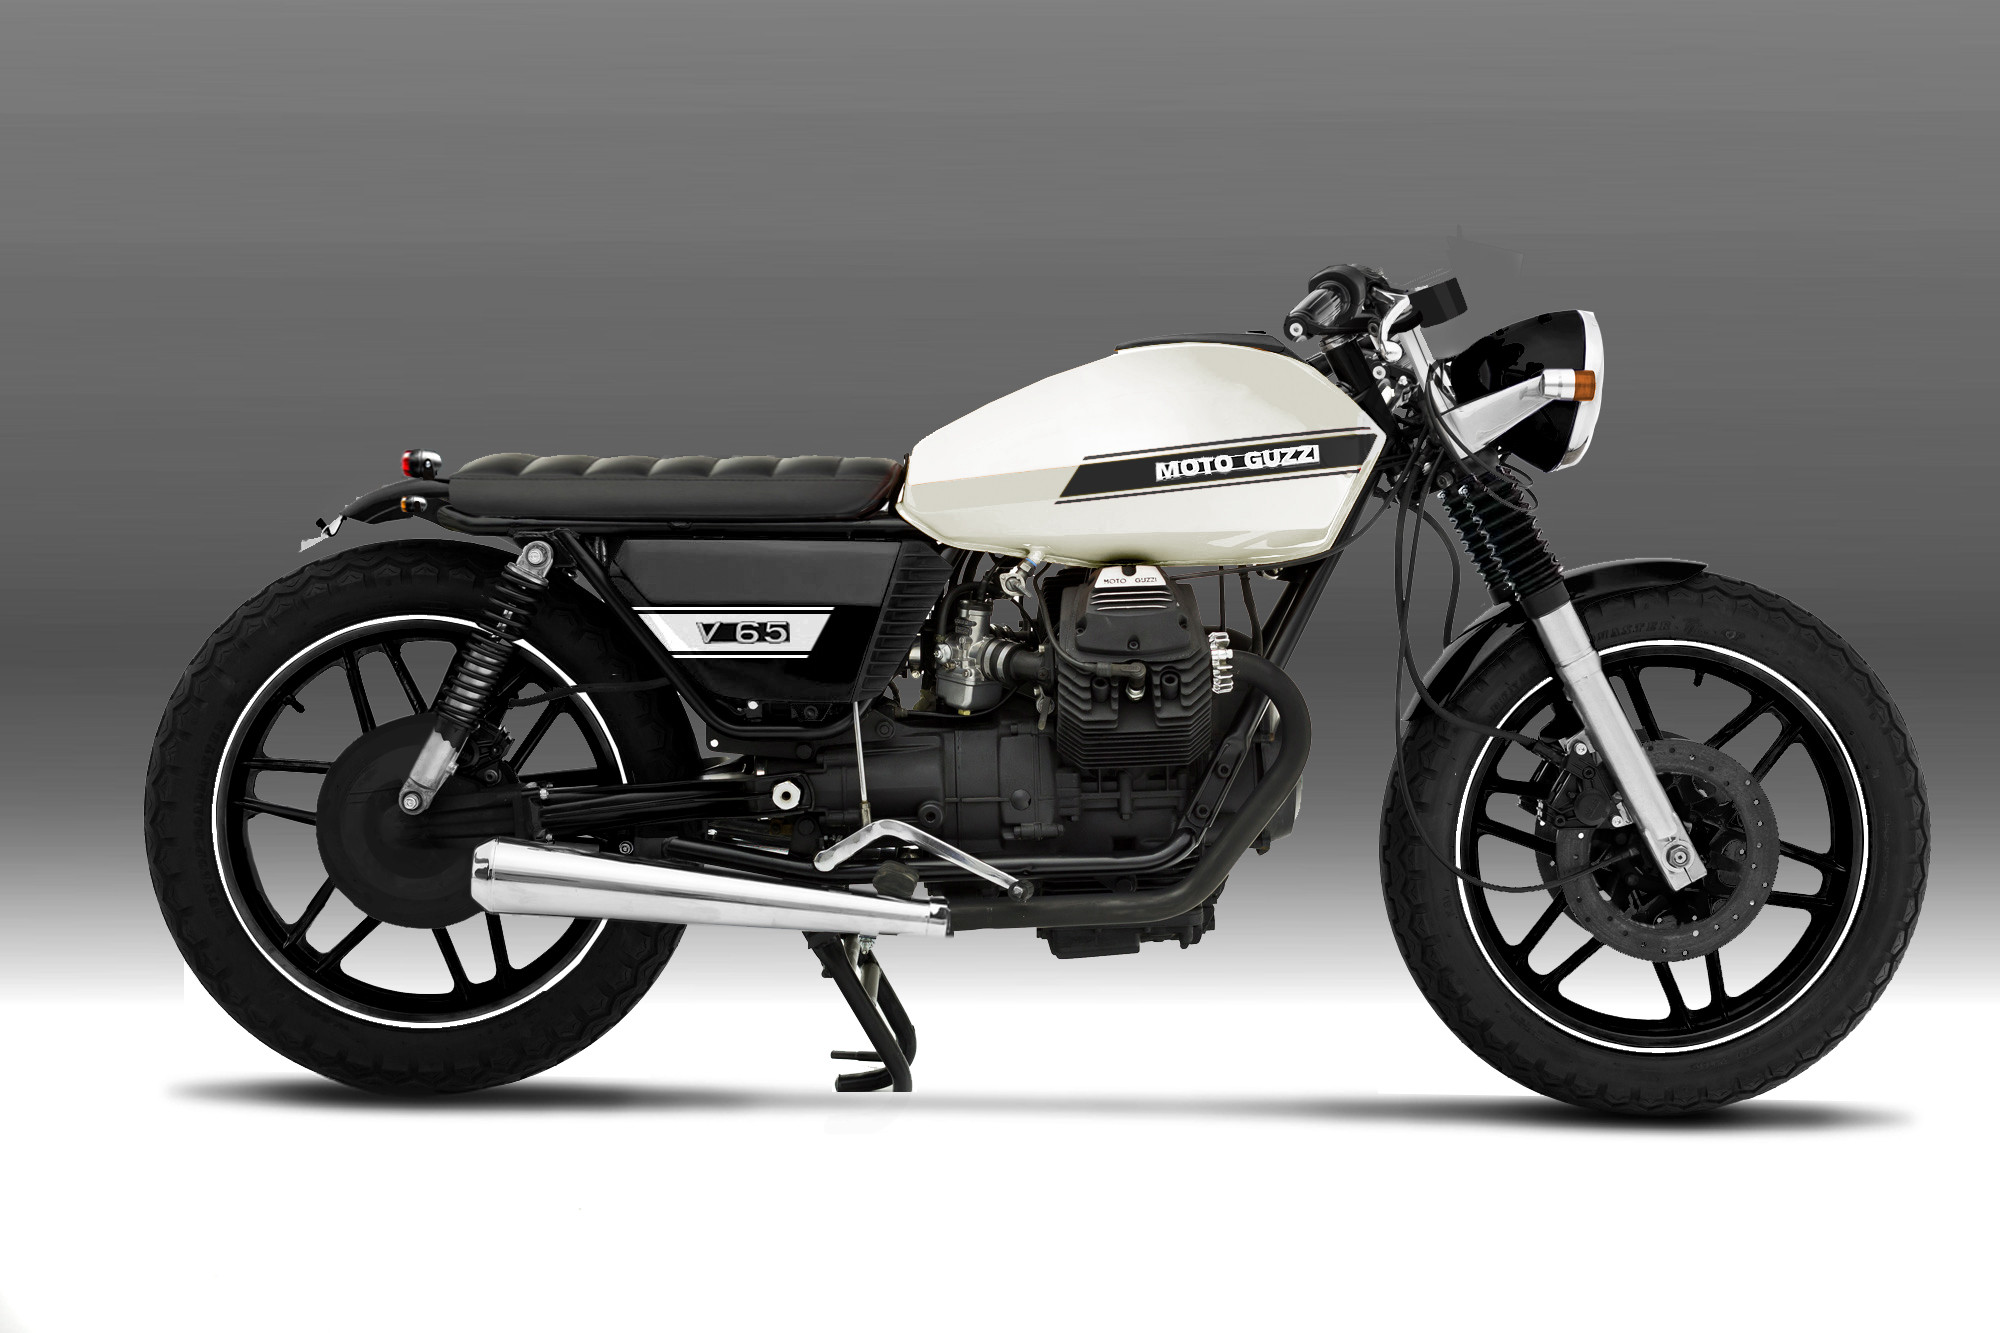 moto guzzi v65 custom pics specs and list of seriess by year. Black Bedroom Furniture Sets. Home Design Ideas